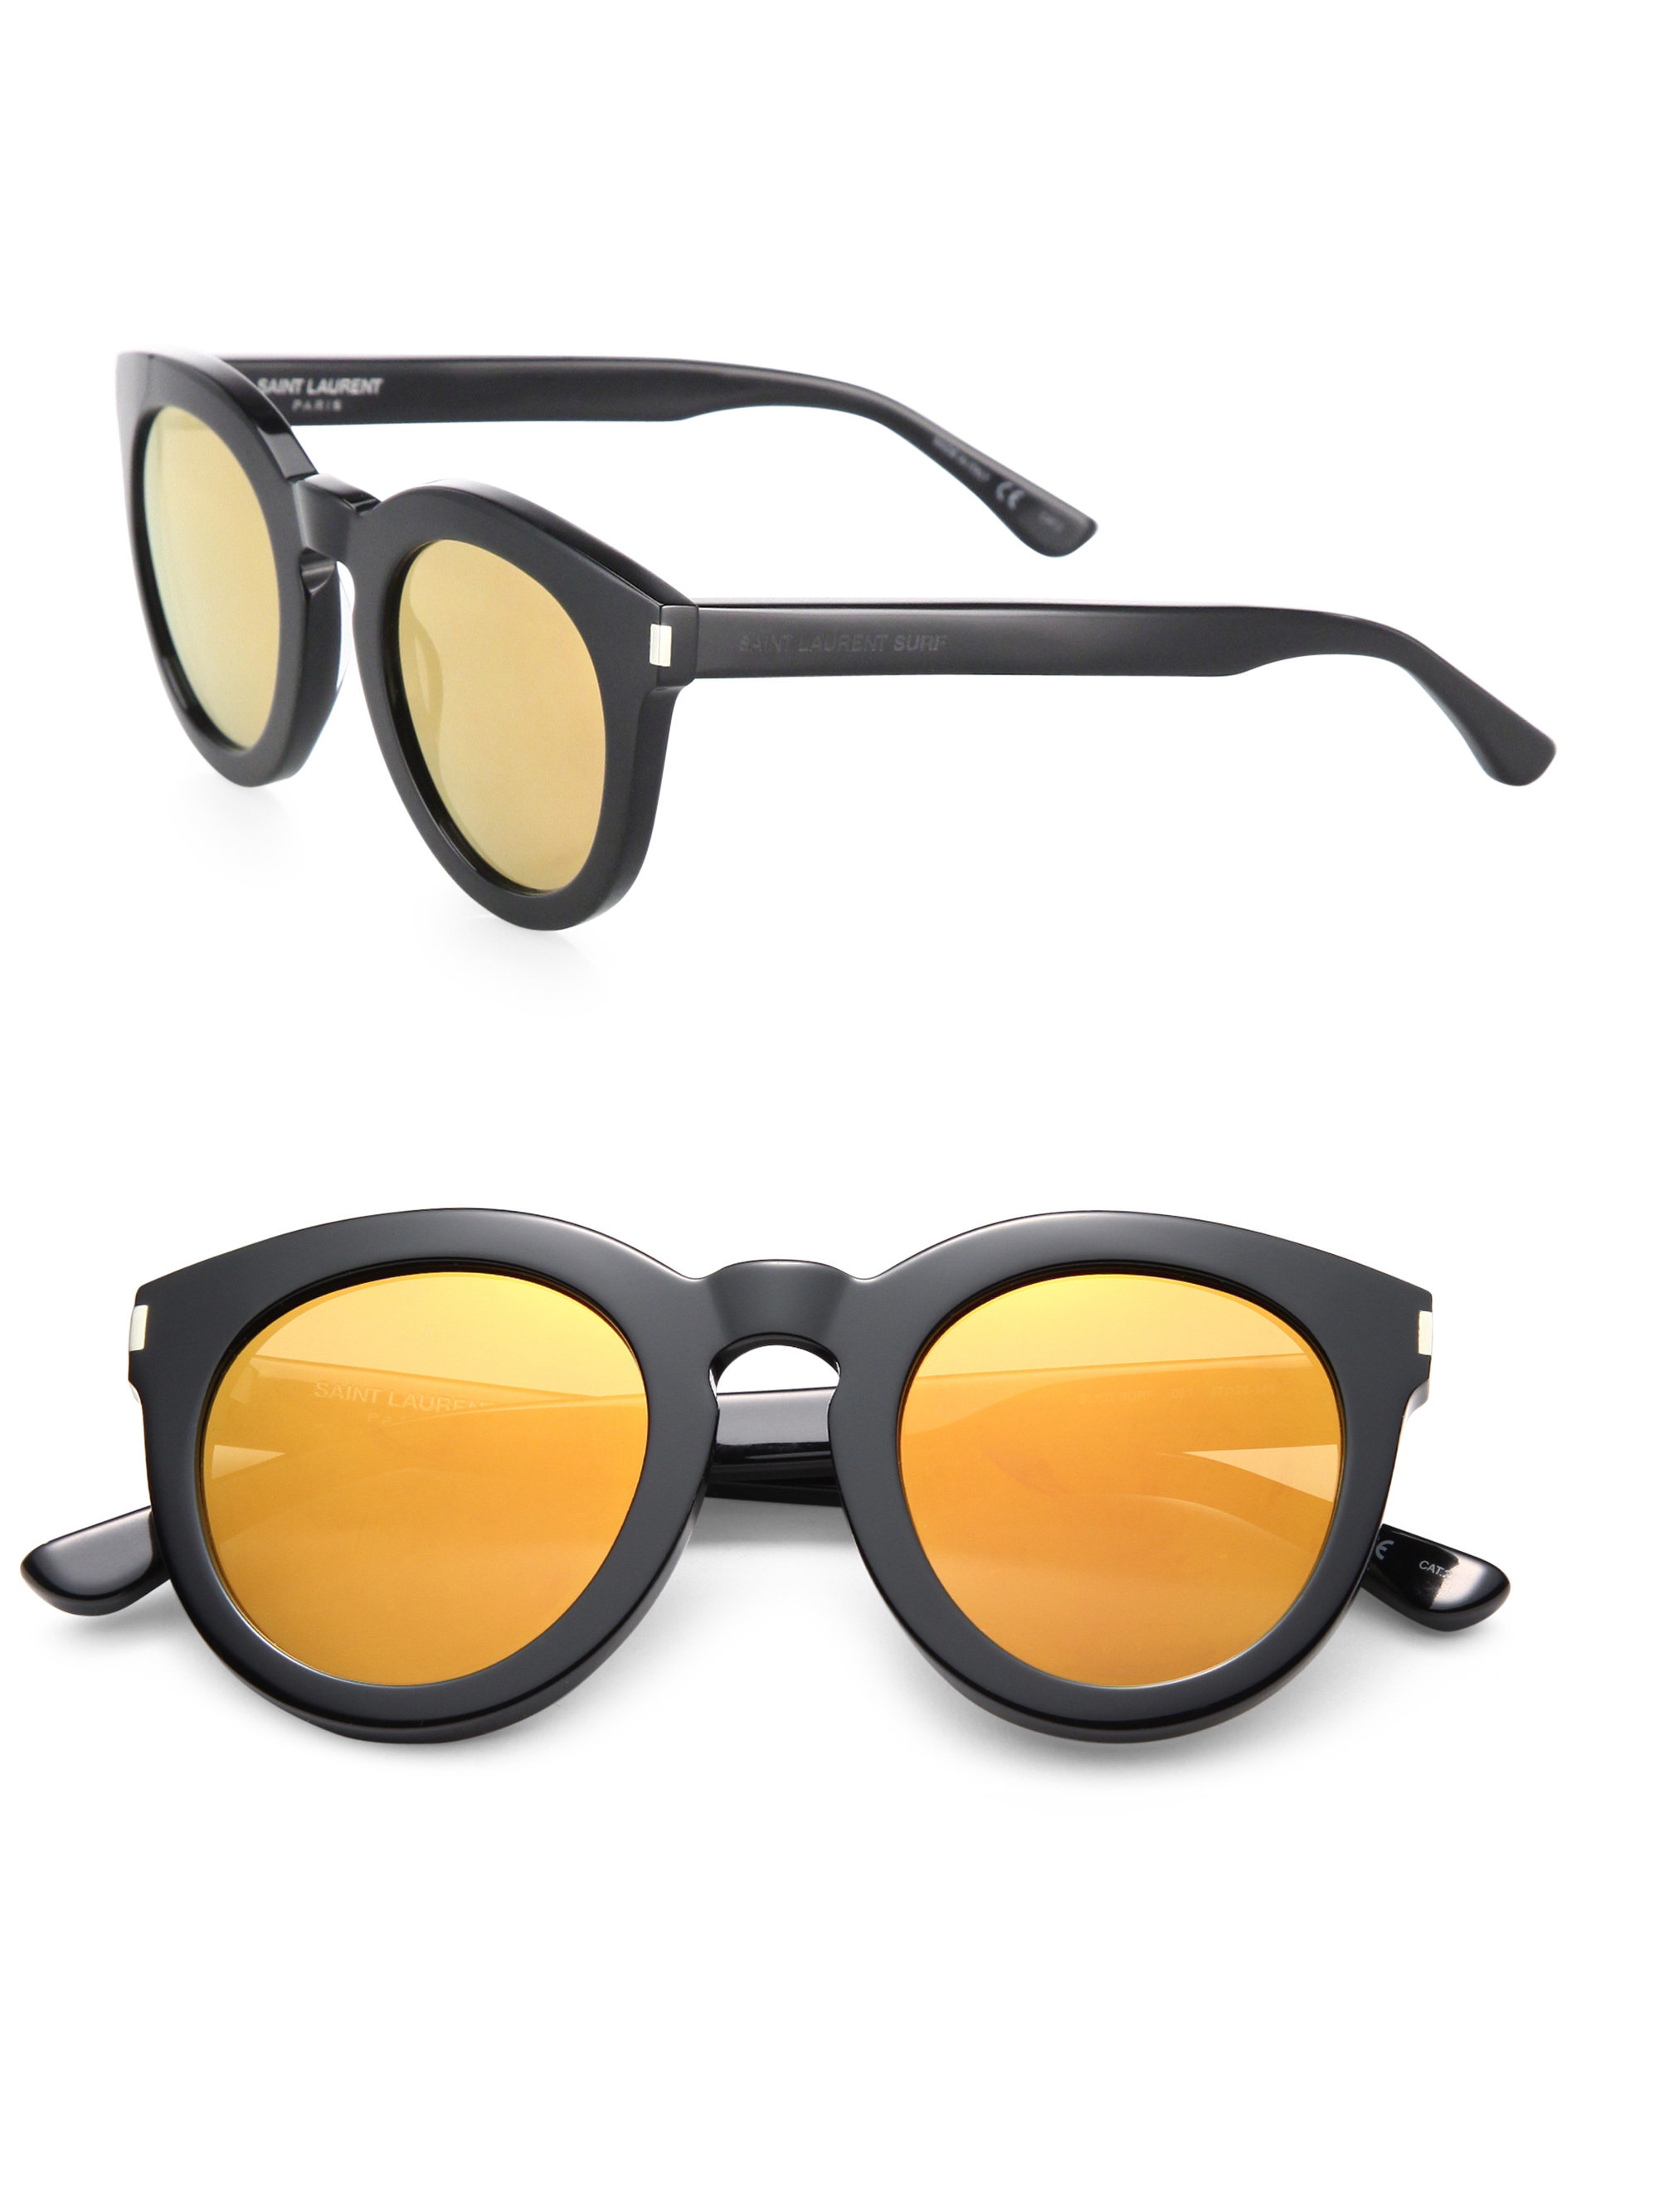 cae2a65ff81 Lyst - Saint Laurent Surf 47mm Round Sunglasses in Yellow